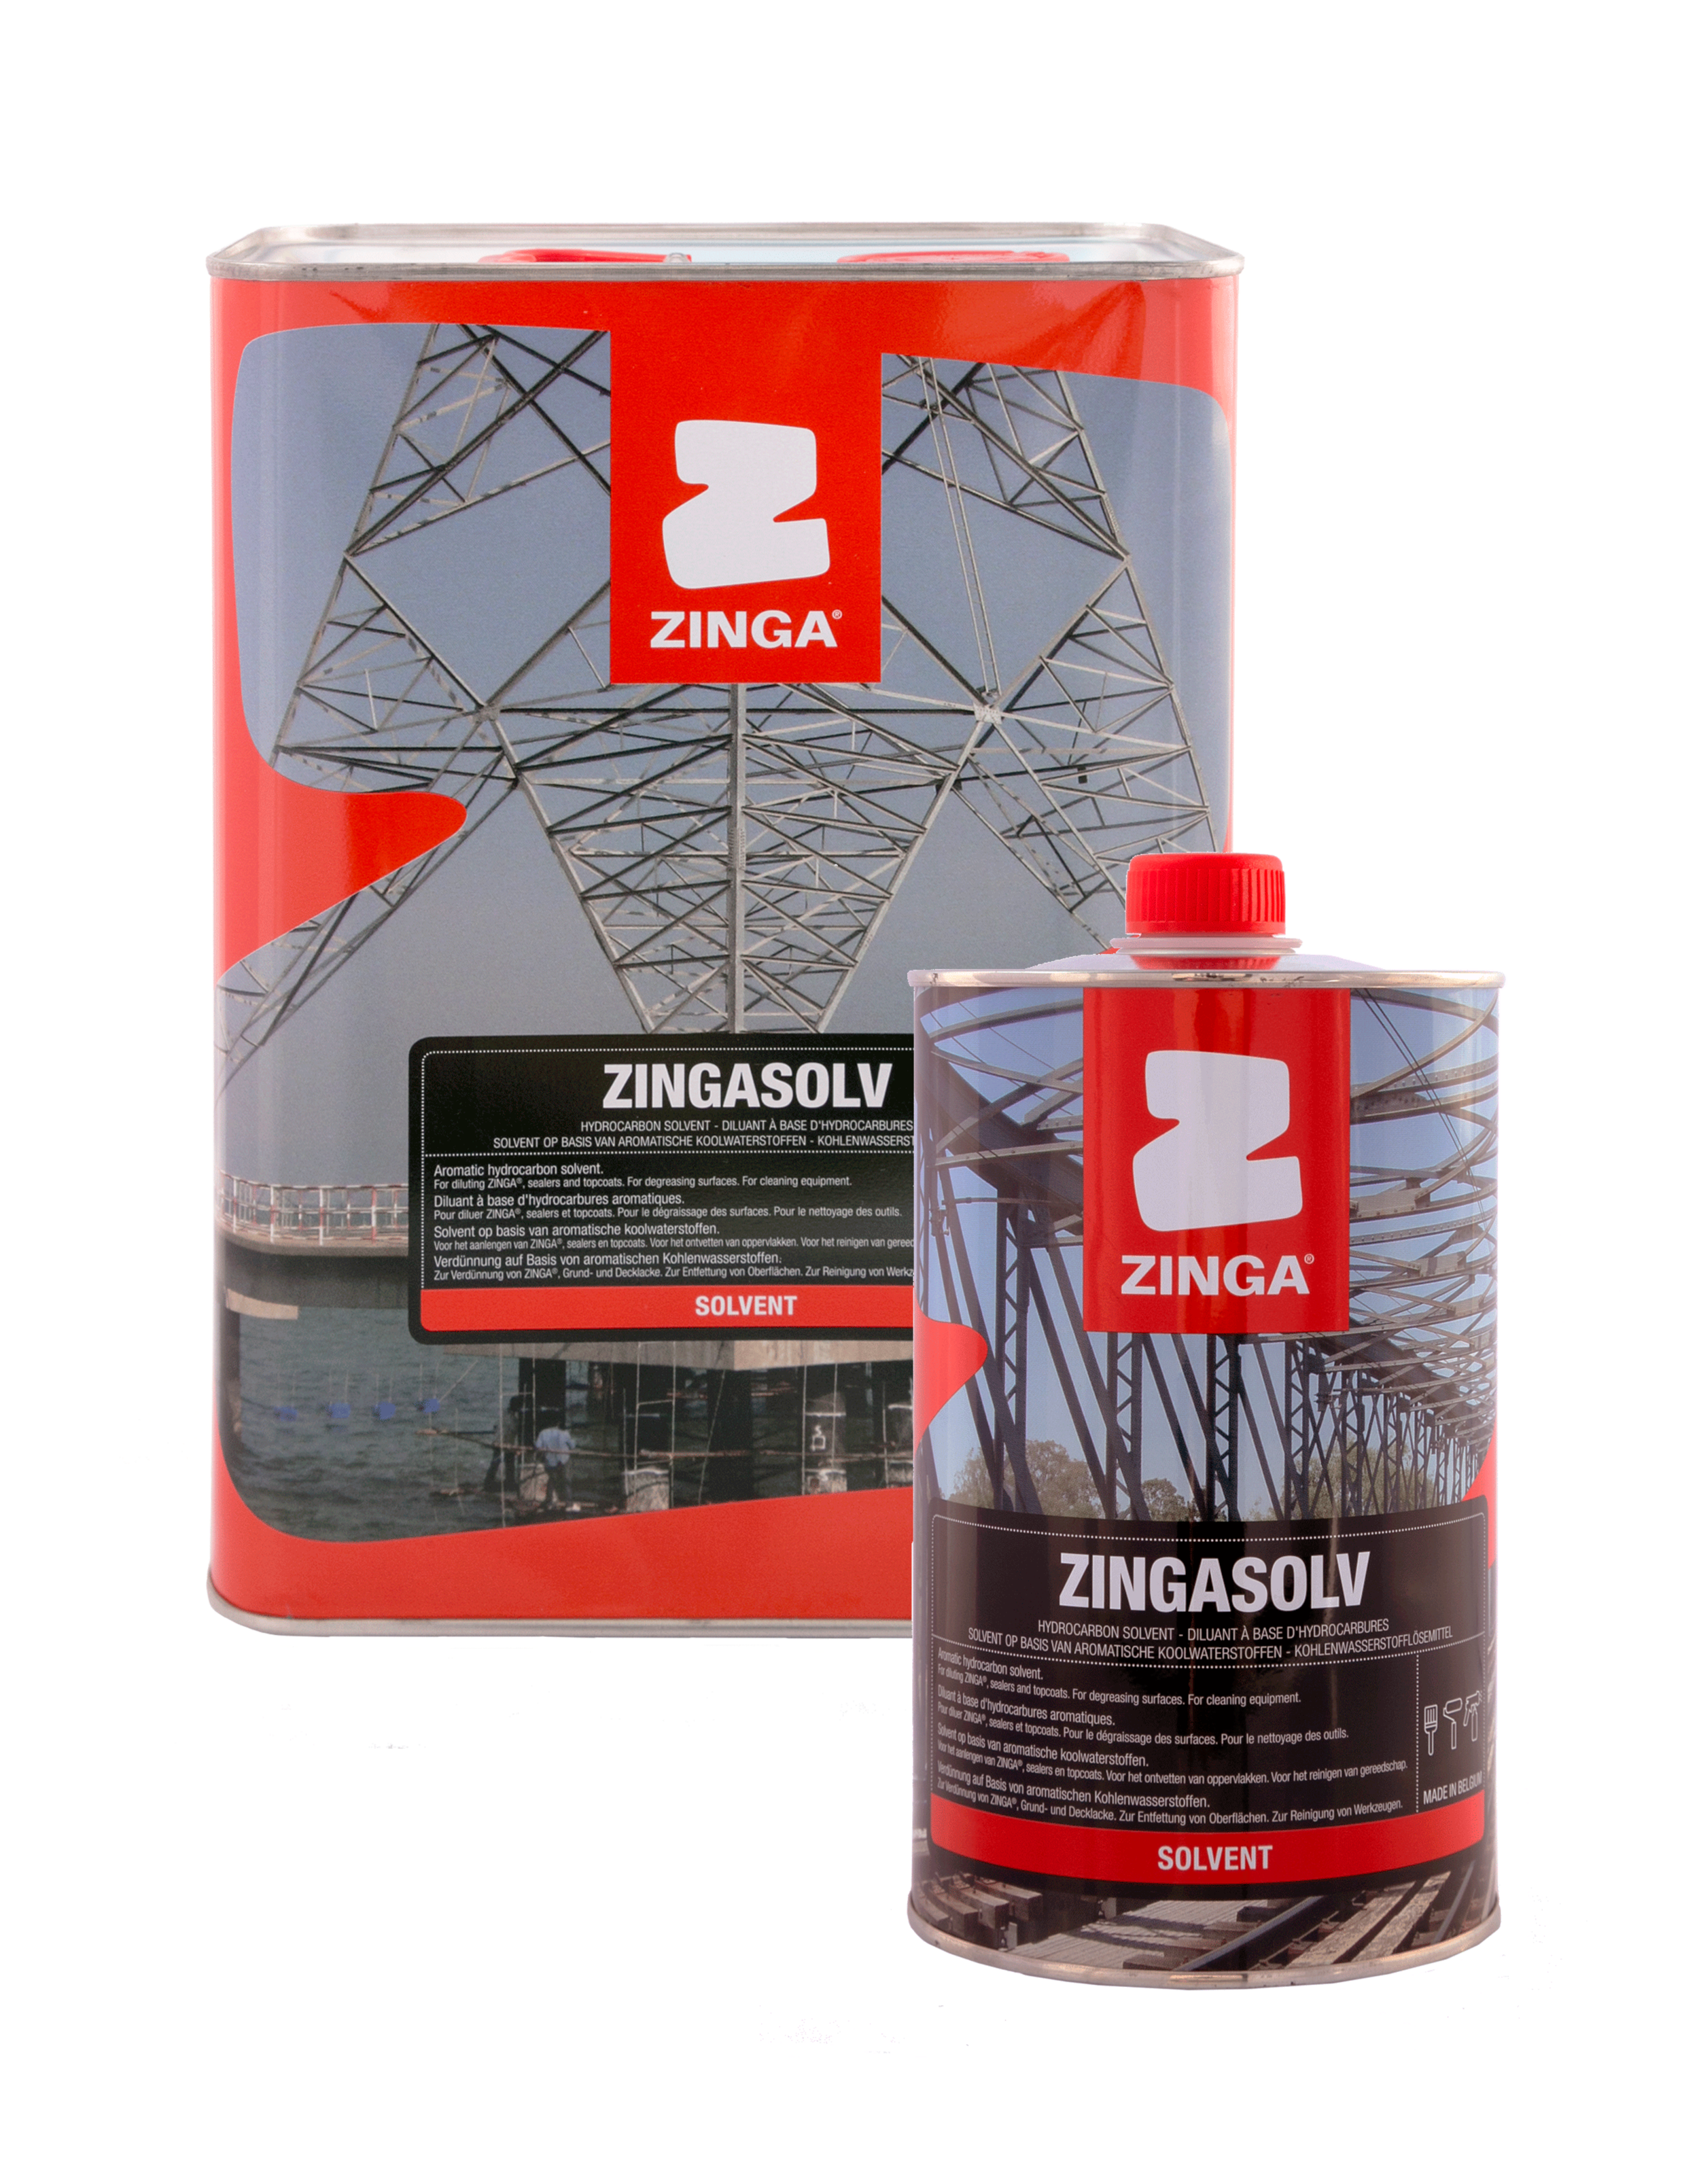 ZINGASOLV - Zingasolv is a C9-C10 aromatic hydrocarbon solvent.Zingasolv is manufactured to the highest standards. It does not contain detectable quantities of polycyclic aromatics, heavy metals or chlorinated compounds.For more product information click on the data sheet links:TDS Zingasolv